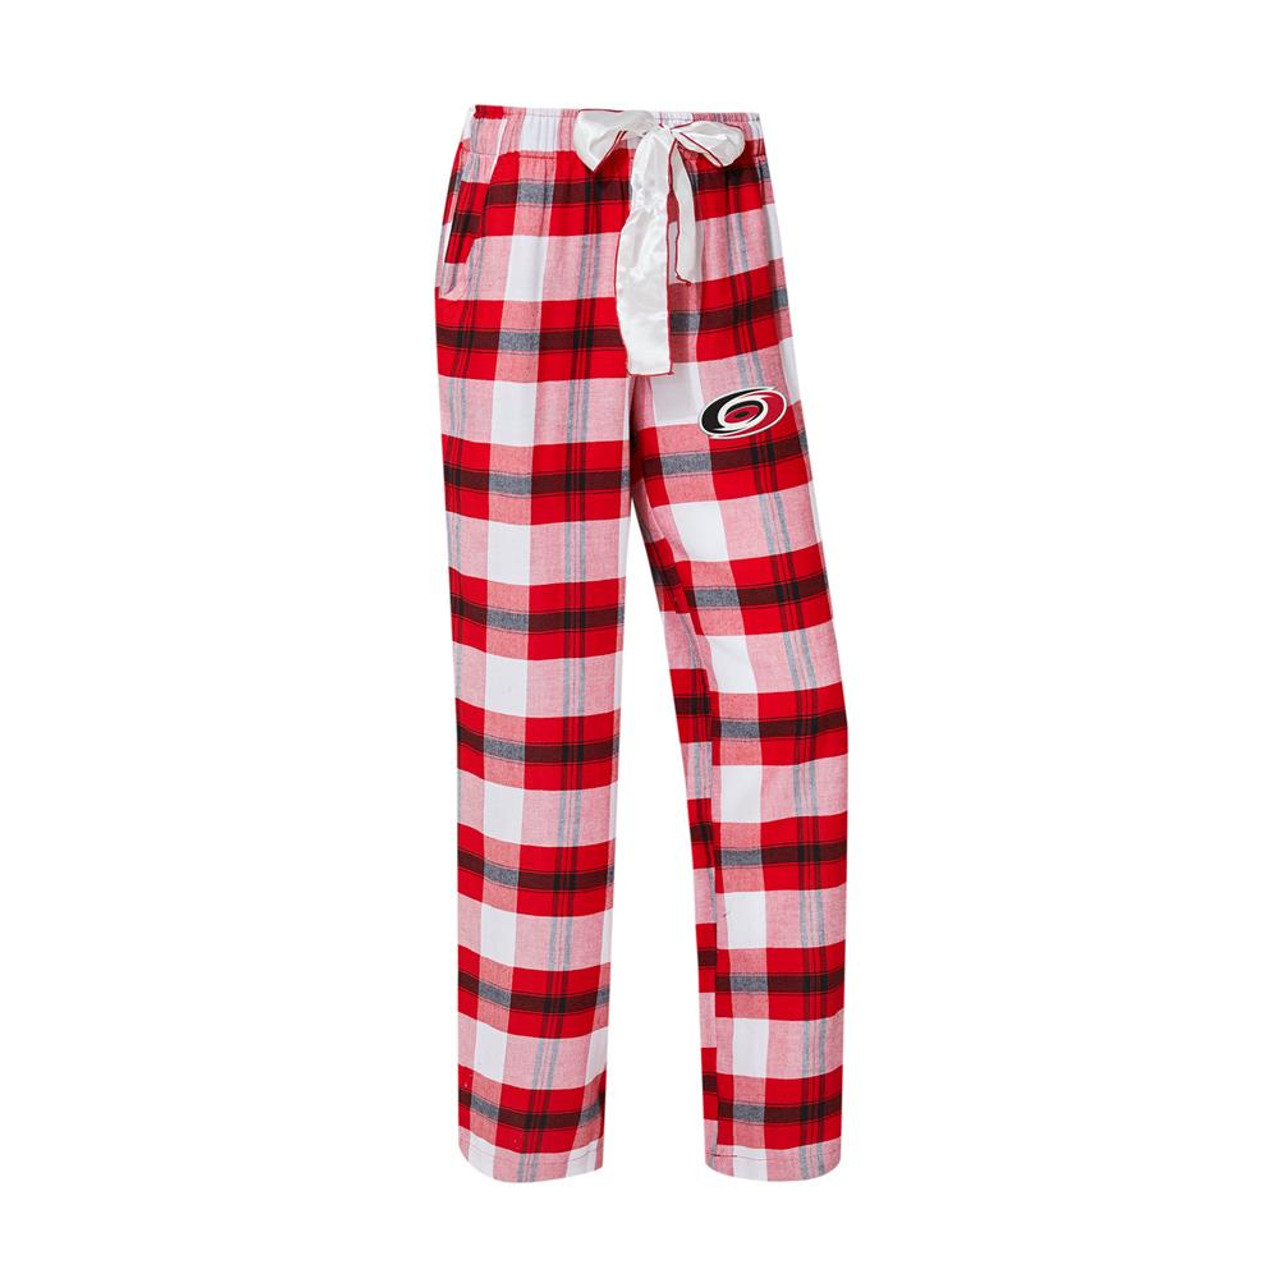 Carolina Hurricanes Women's Flannel Pajamas Plaid PJ Bottoms